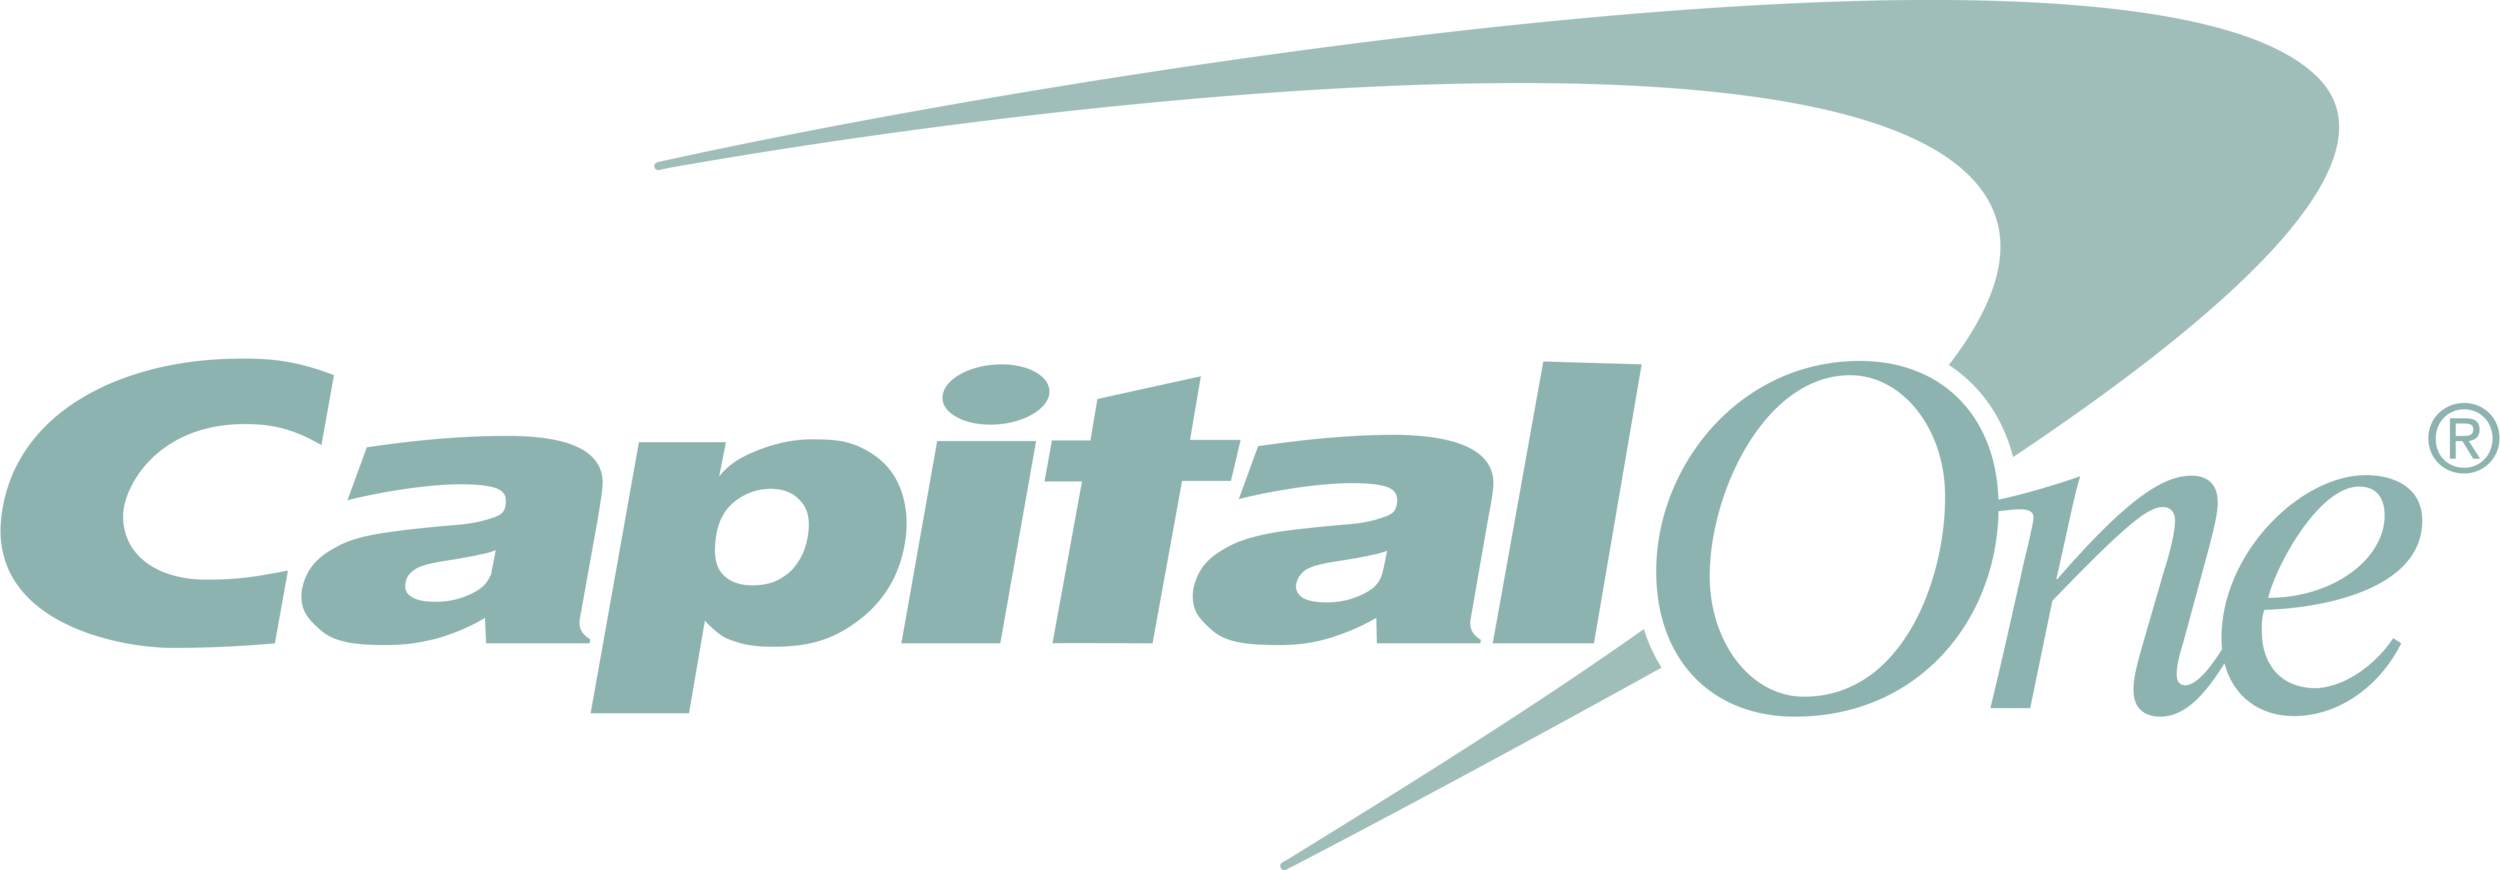 capital-one-2.png